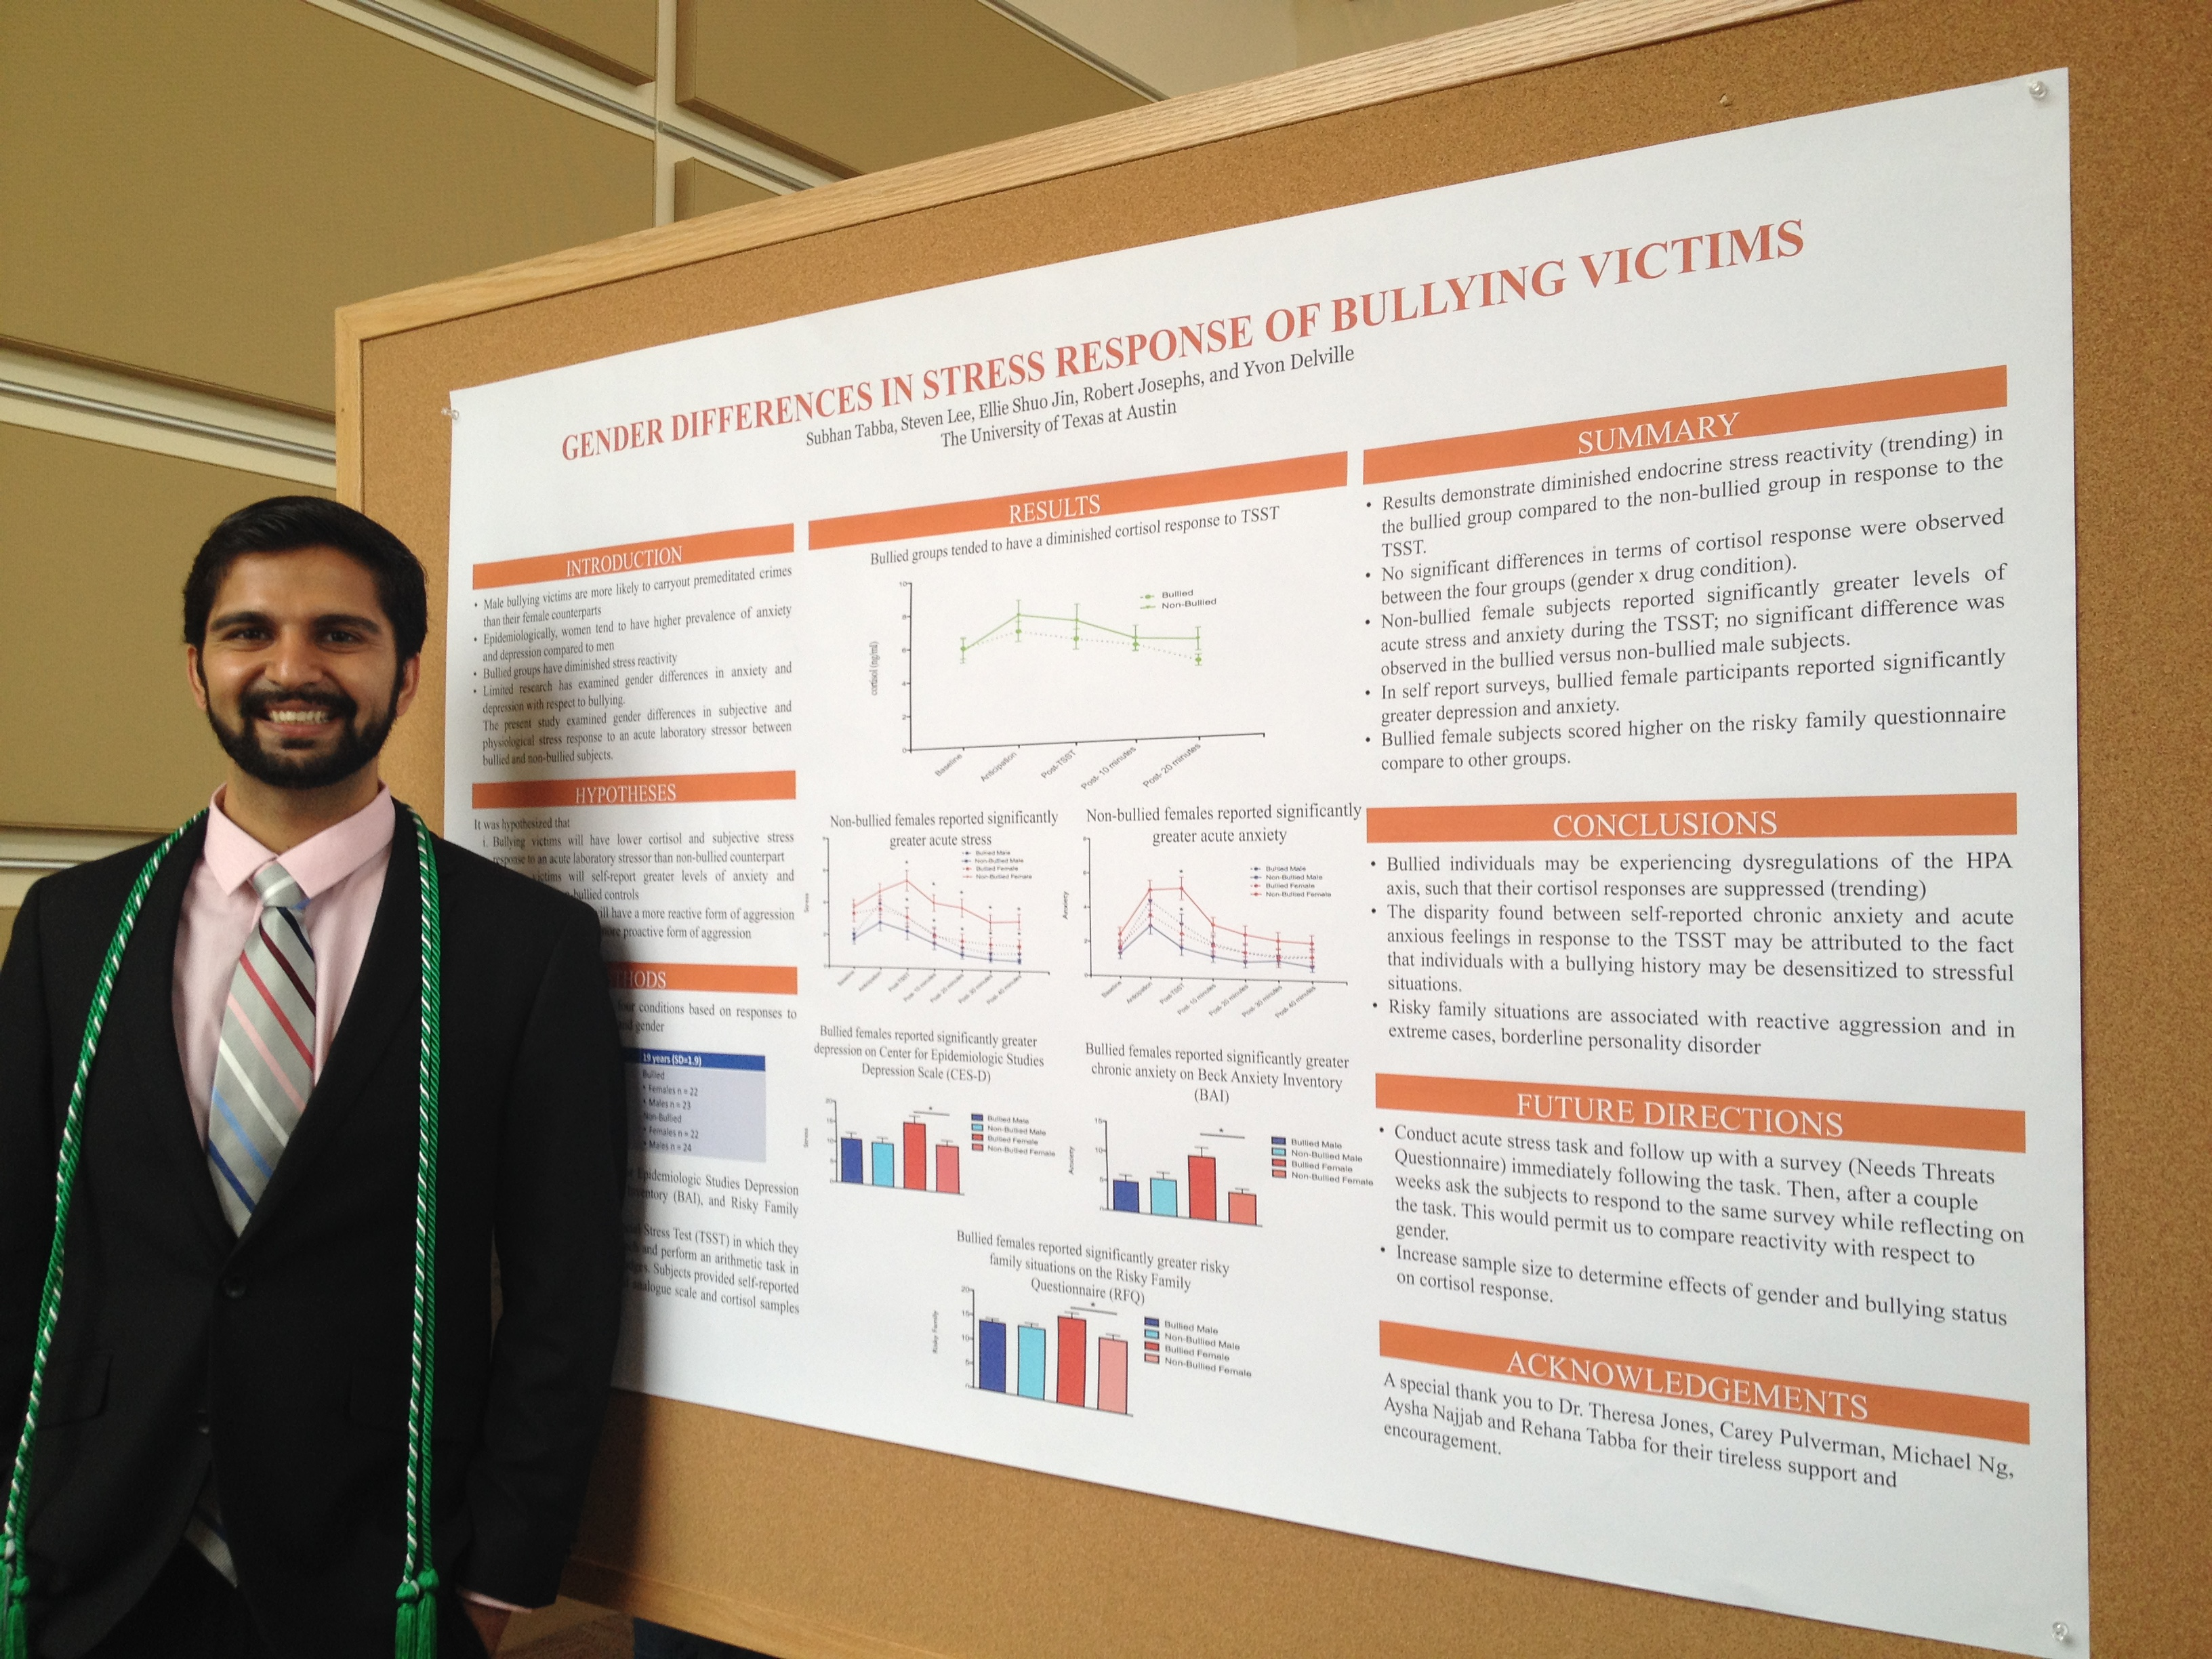 Subhan next to his poster.